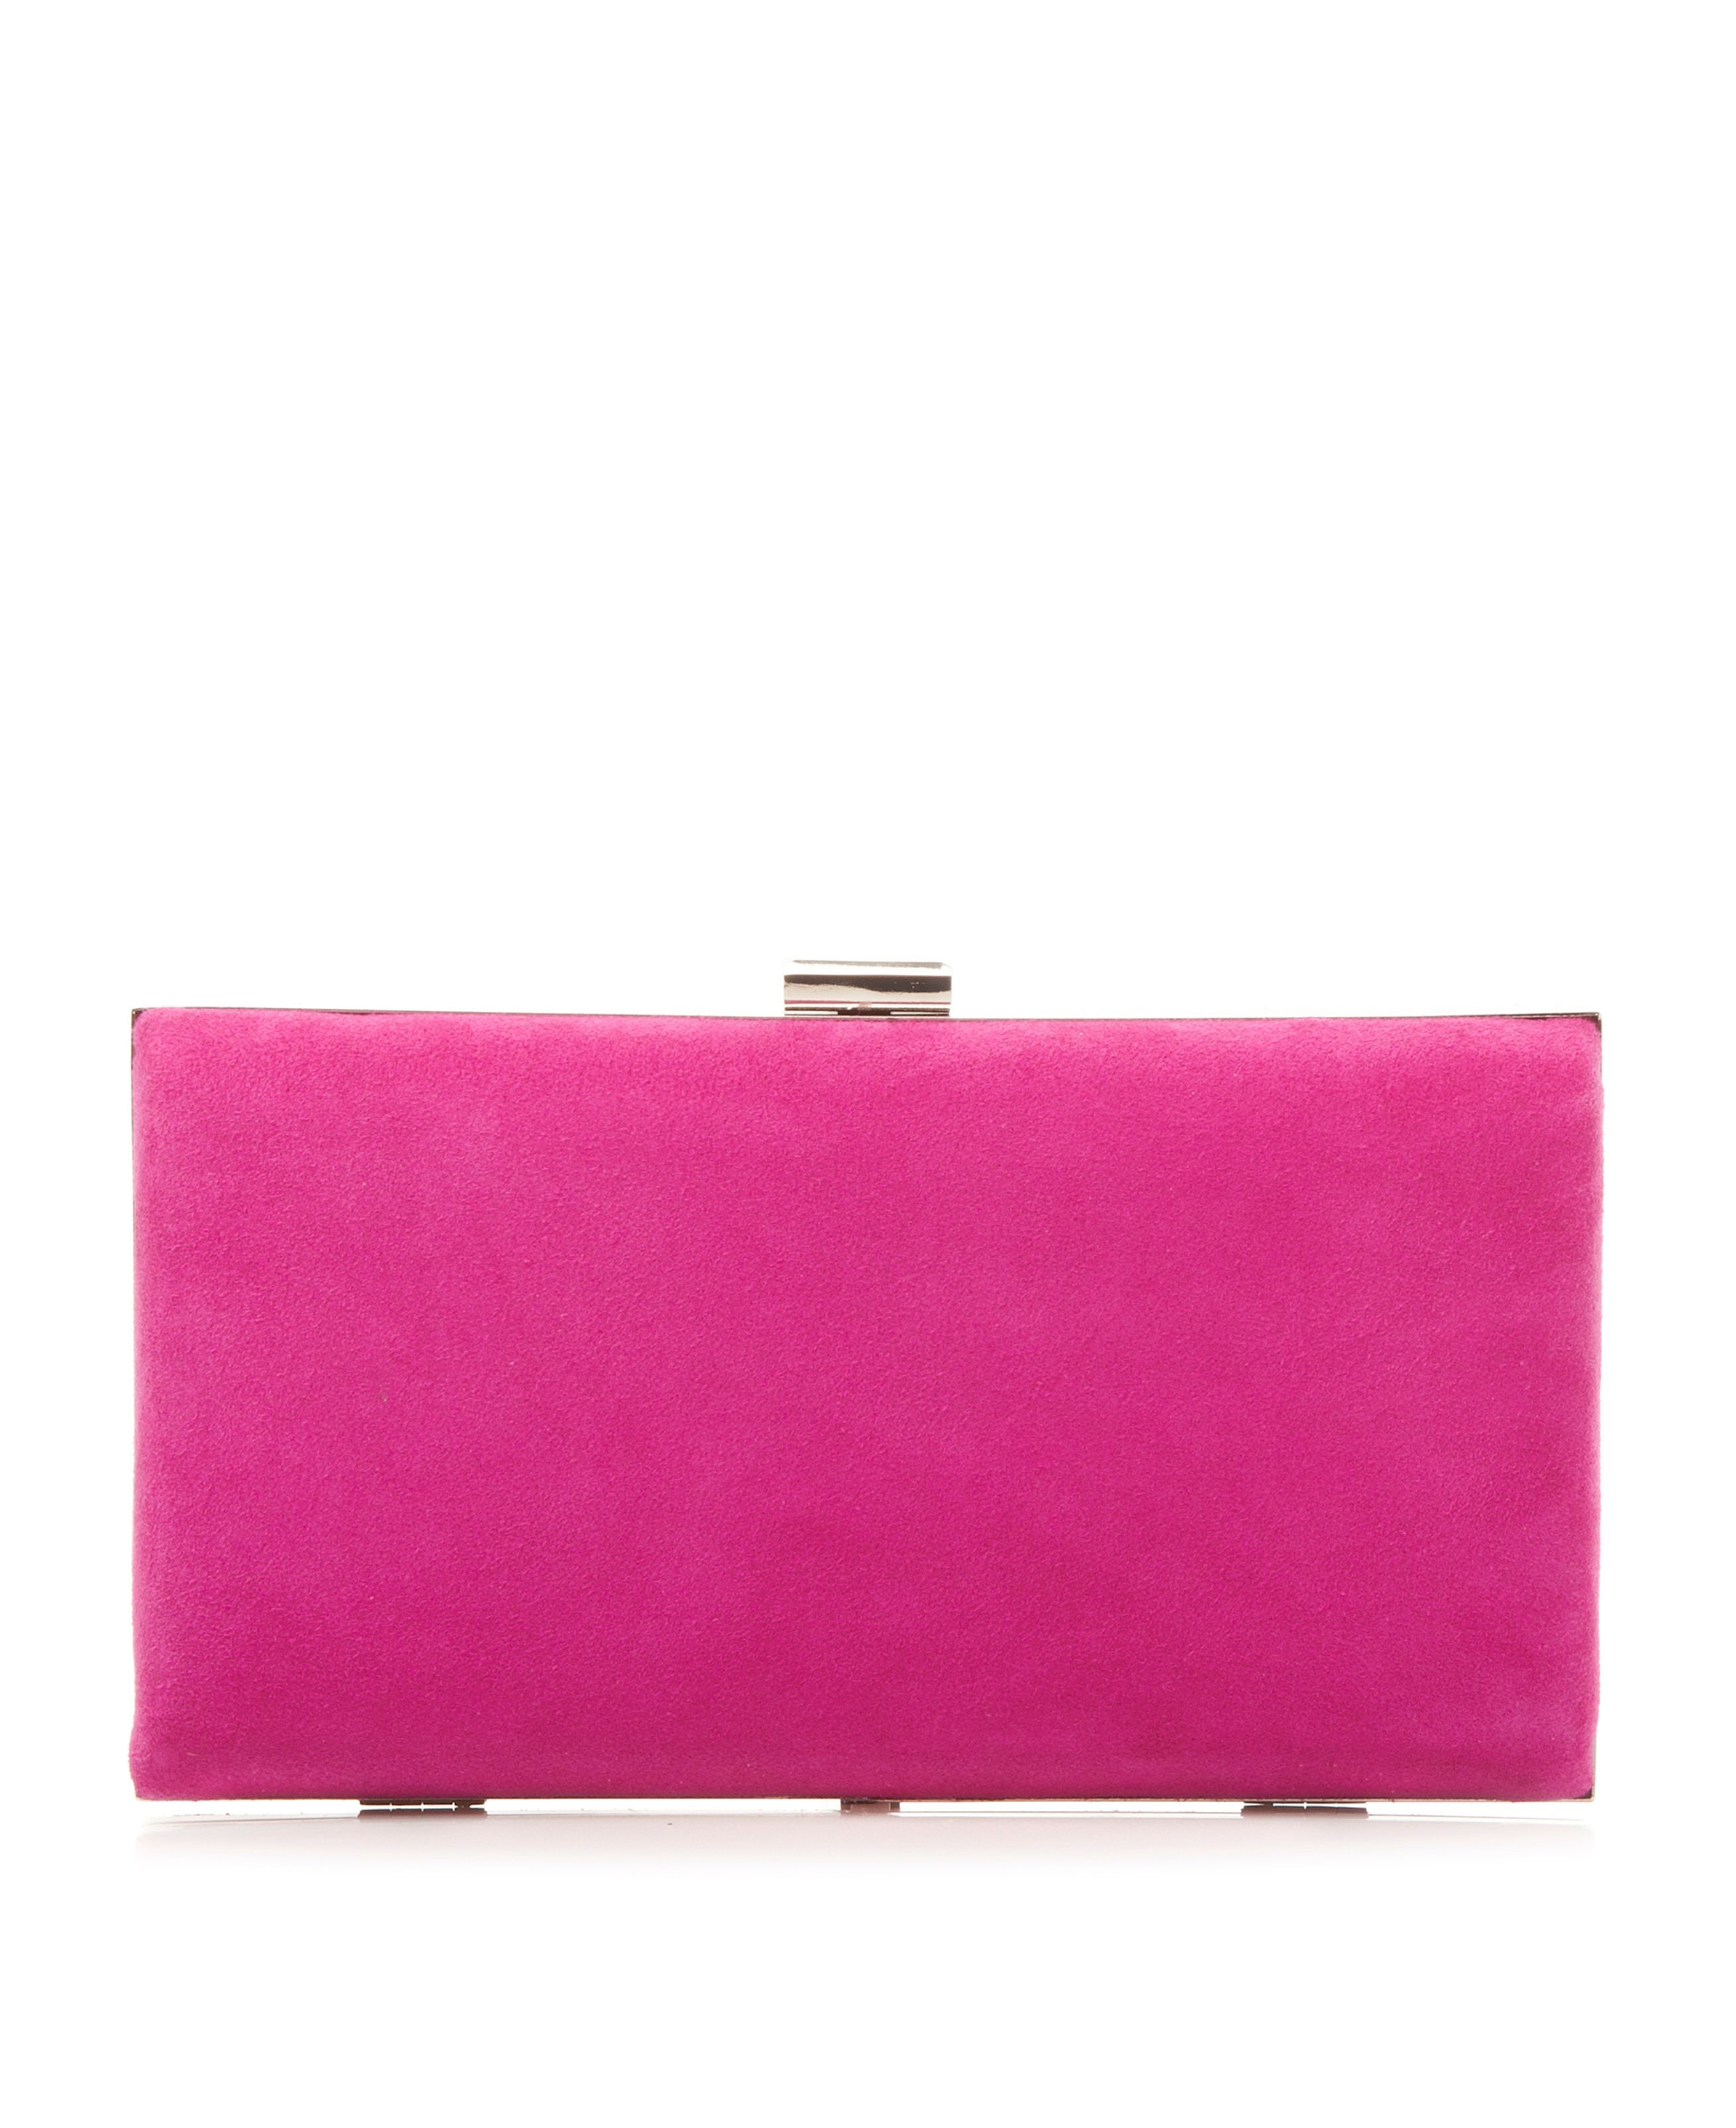 Barley hard case clutch bag